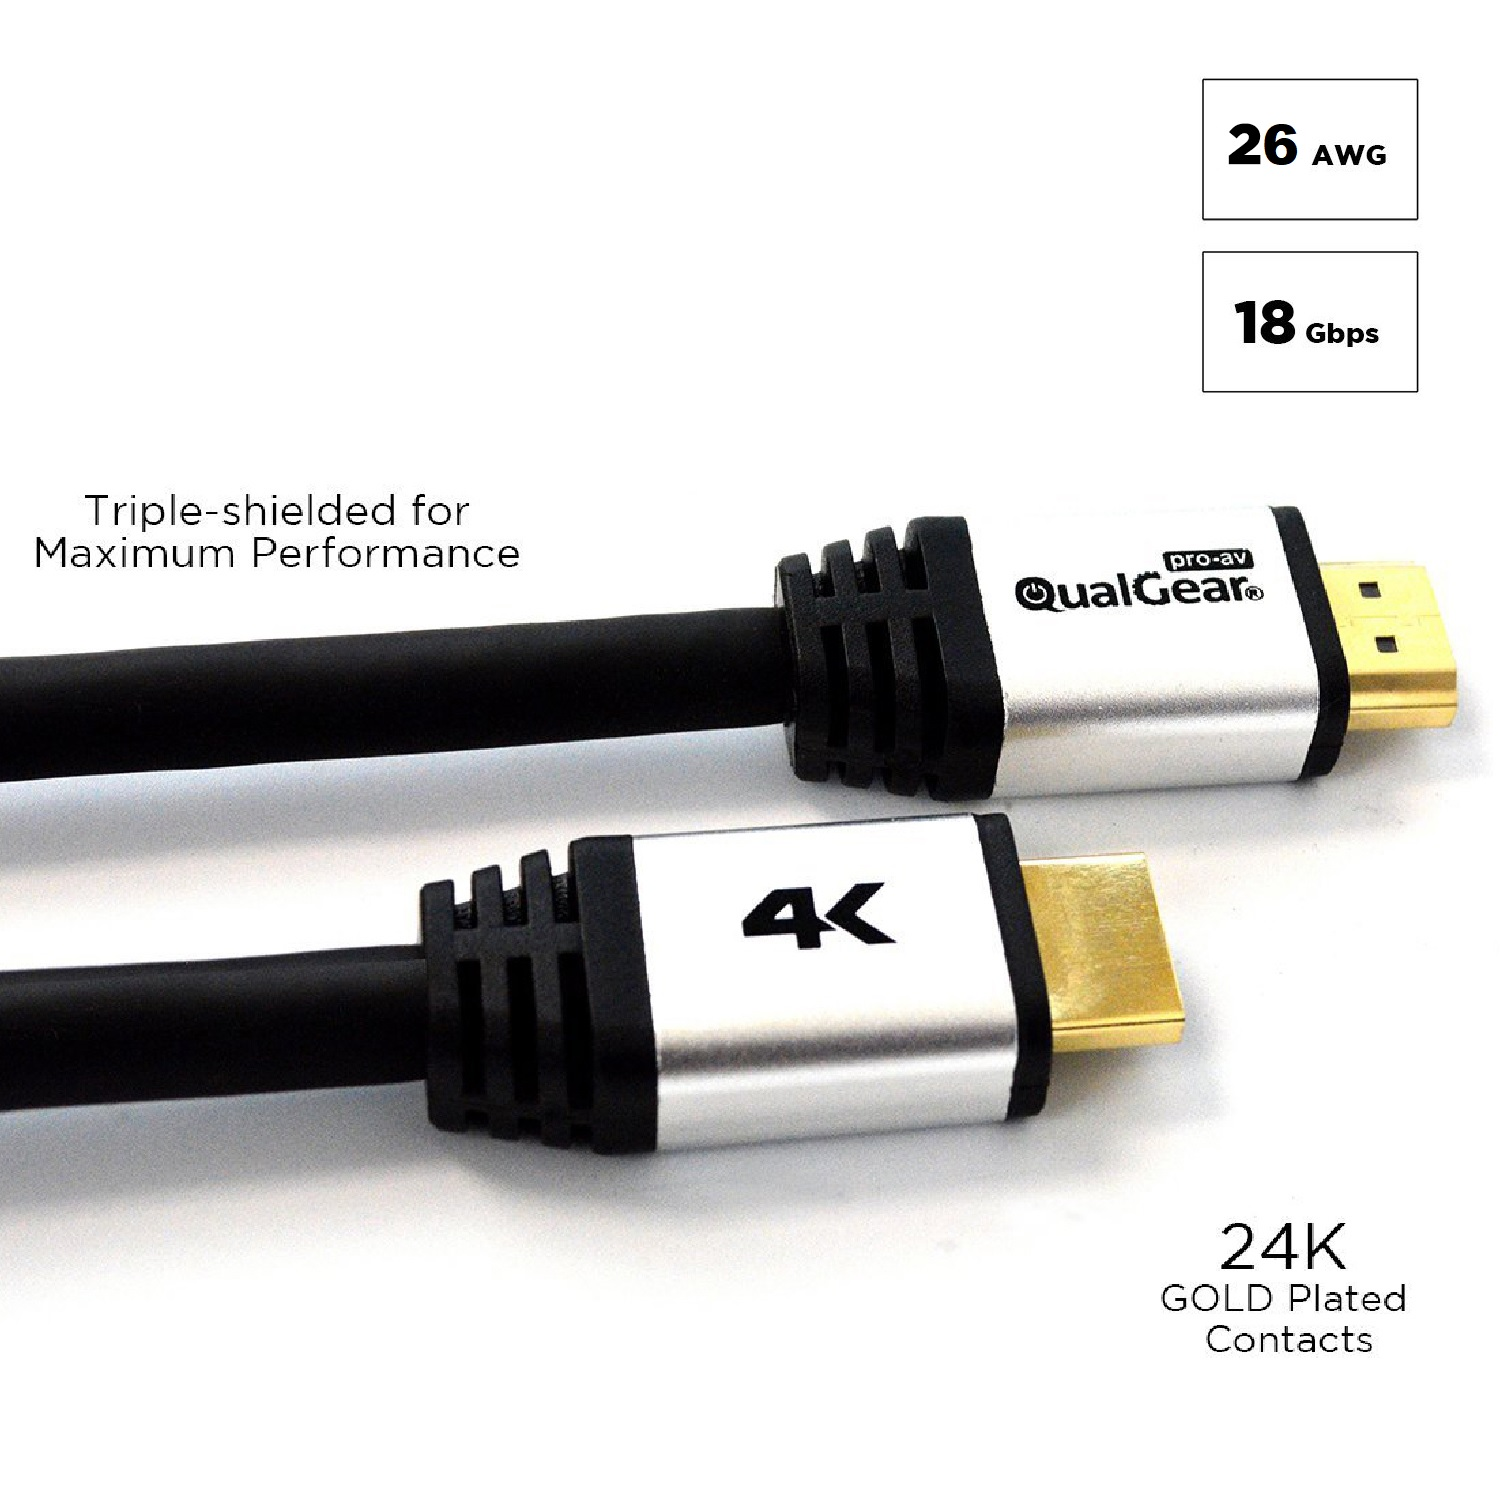 QualGear 30 Ft High-Speed Long HDMI 2.0 Cable with 24K Gold Plated Contacts, Supports 4K Ultra HD, 3D, 18 Gbps, Audio Return Channel,CL3 Rated for In-Wall Use (QG-CBL-HD20-30FT)